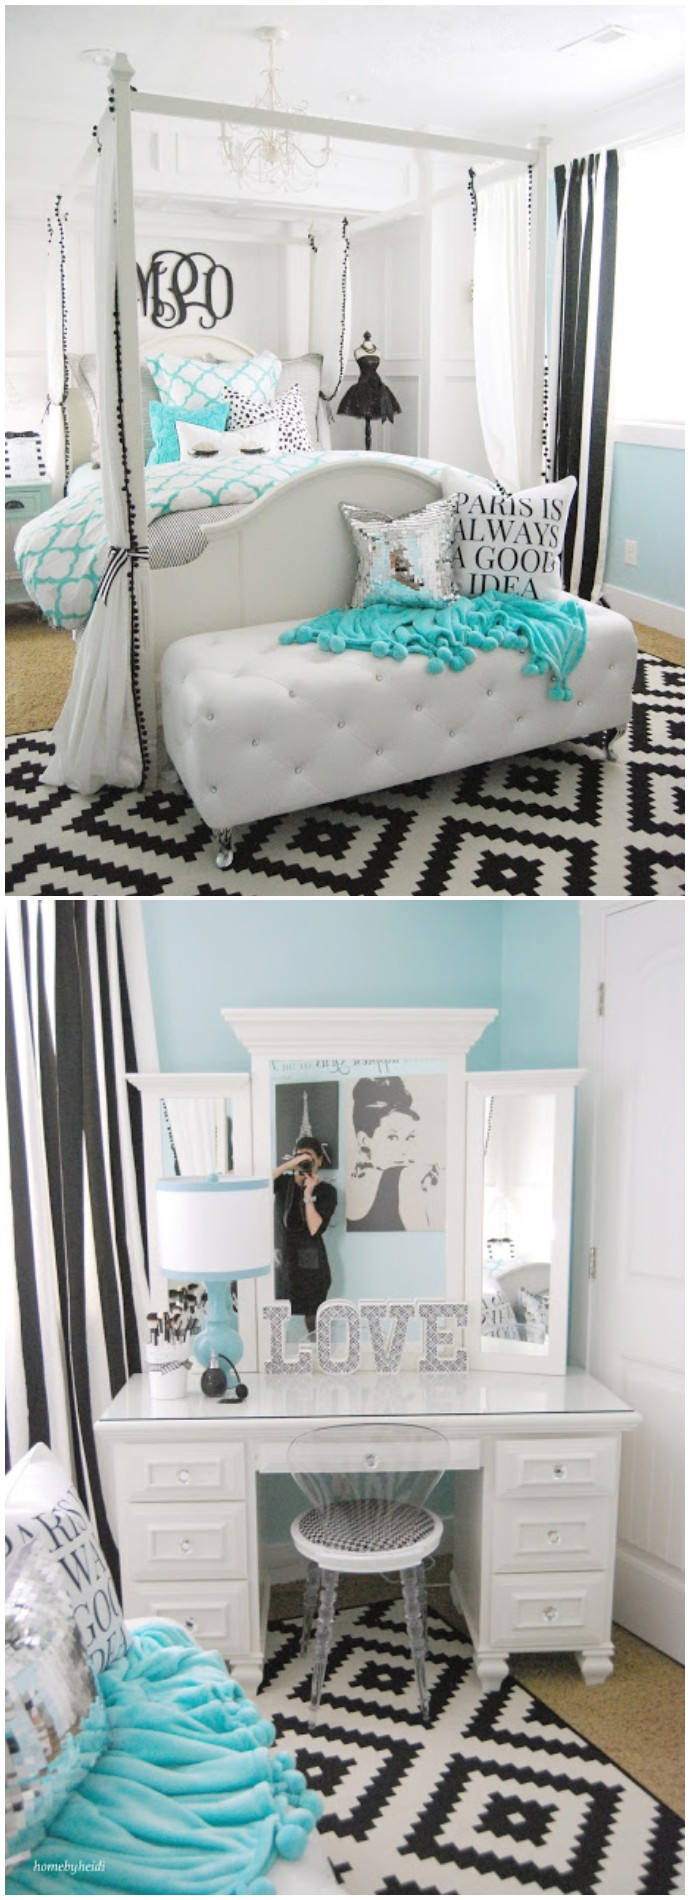 Tiffany Inspired Bedroom